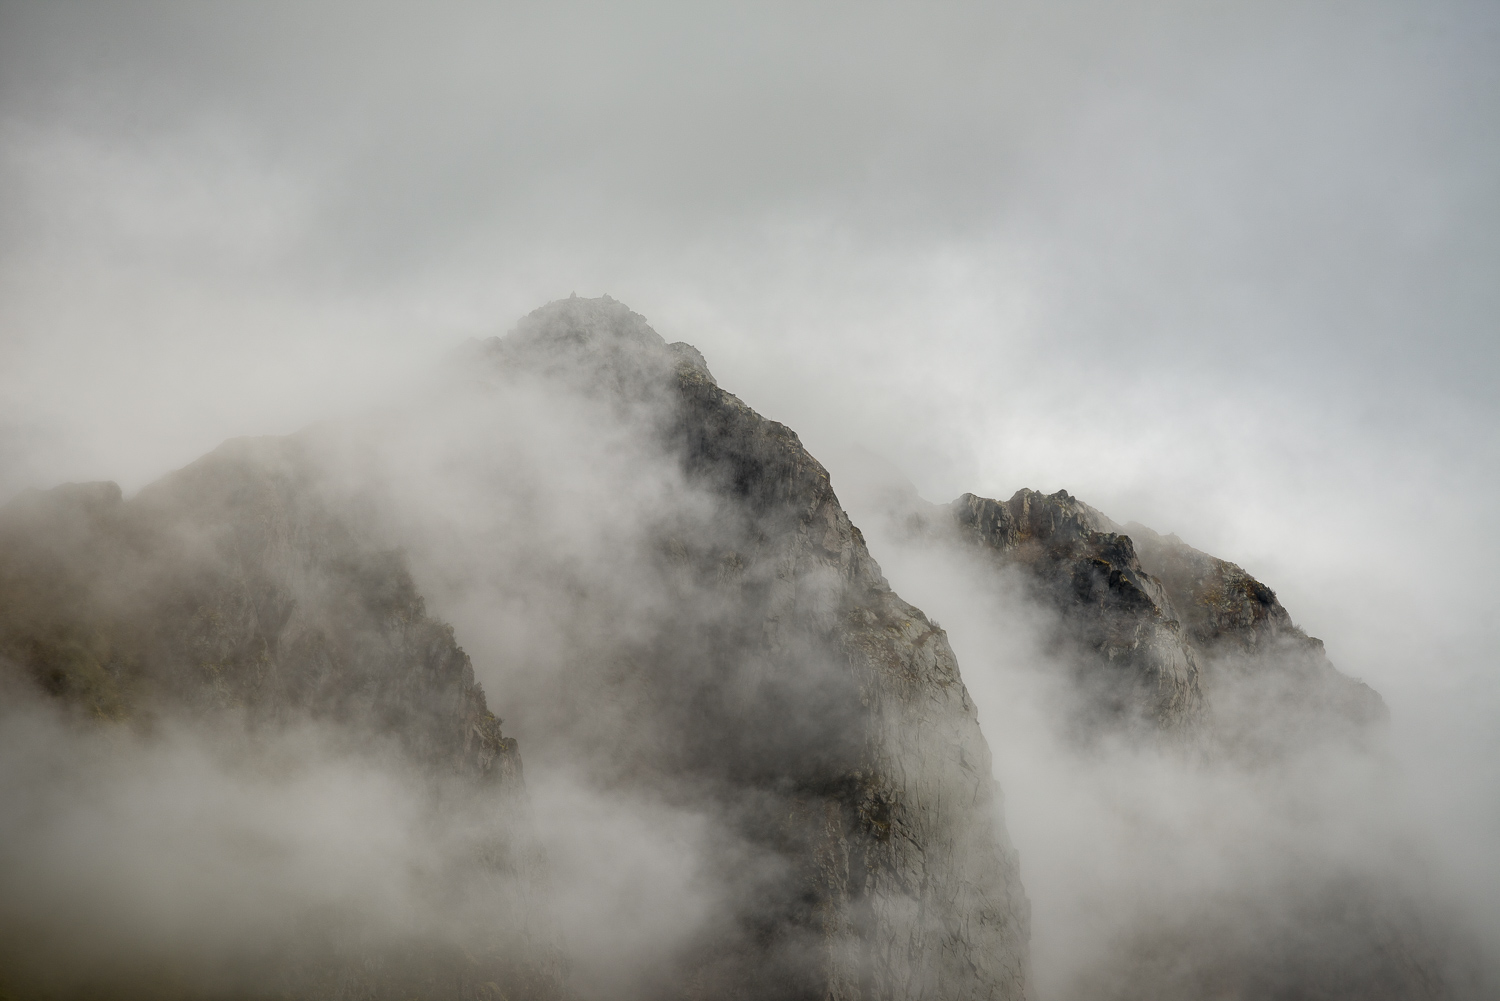 Misty Mountains 3